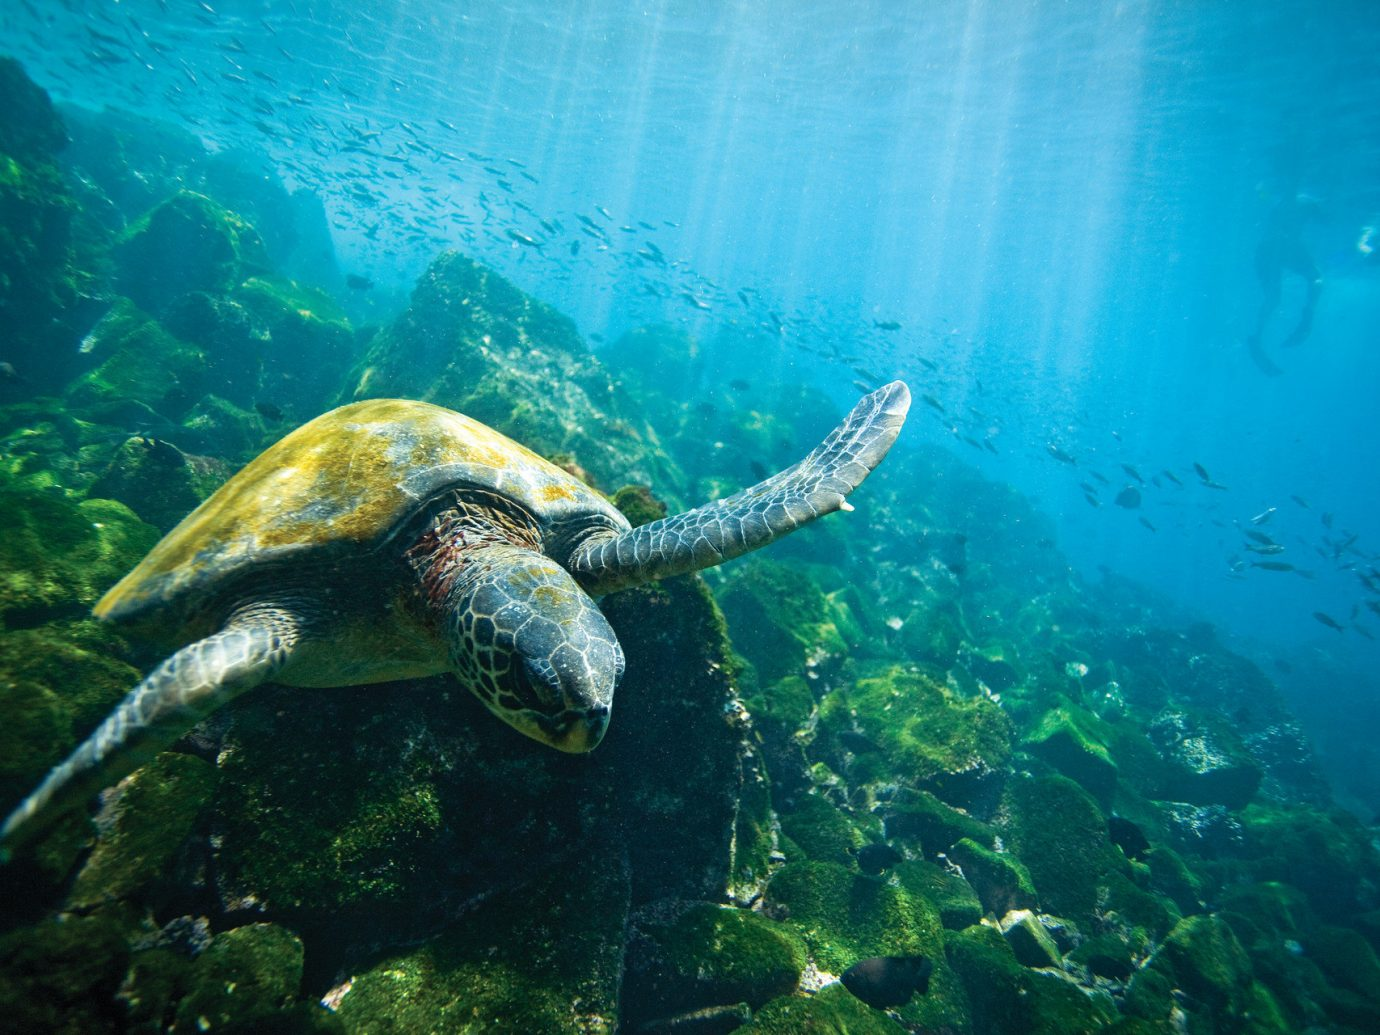 National Parks Trip Ideas outdoor reptile turtle animal marine biology underwater biology sea turtle Sea loggerhead coral reef